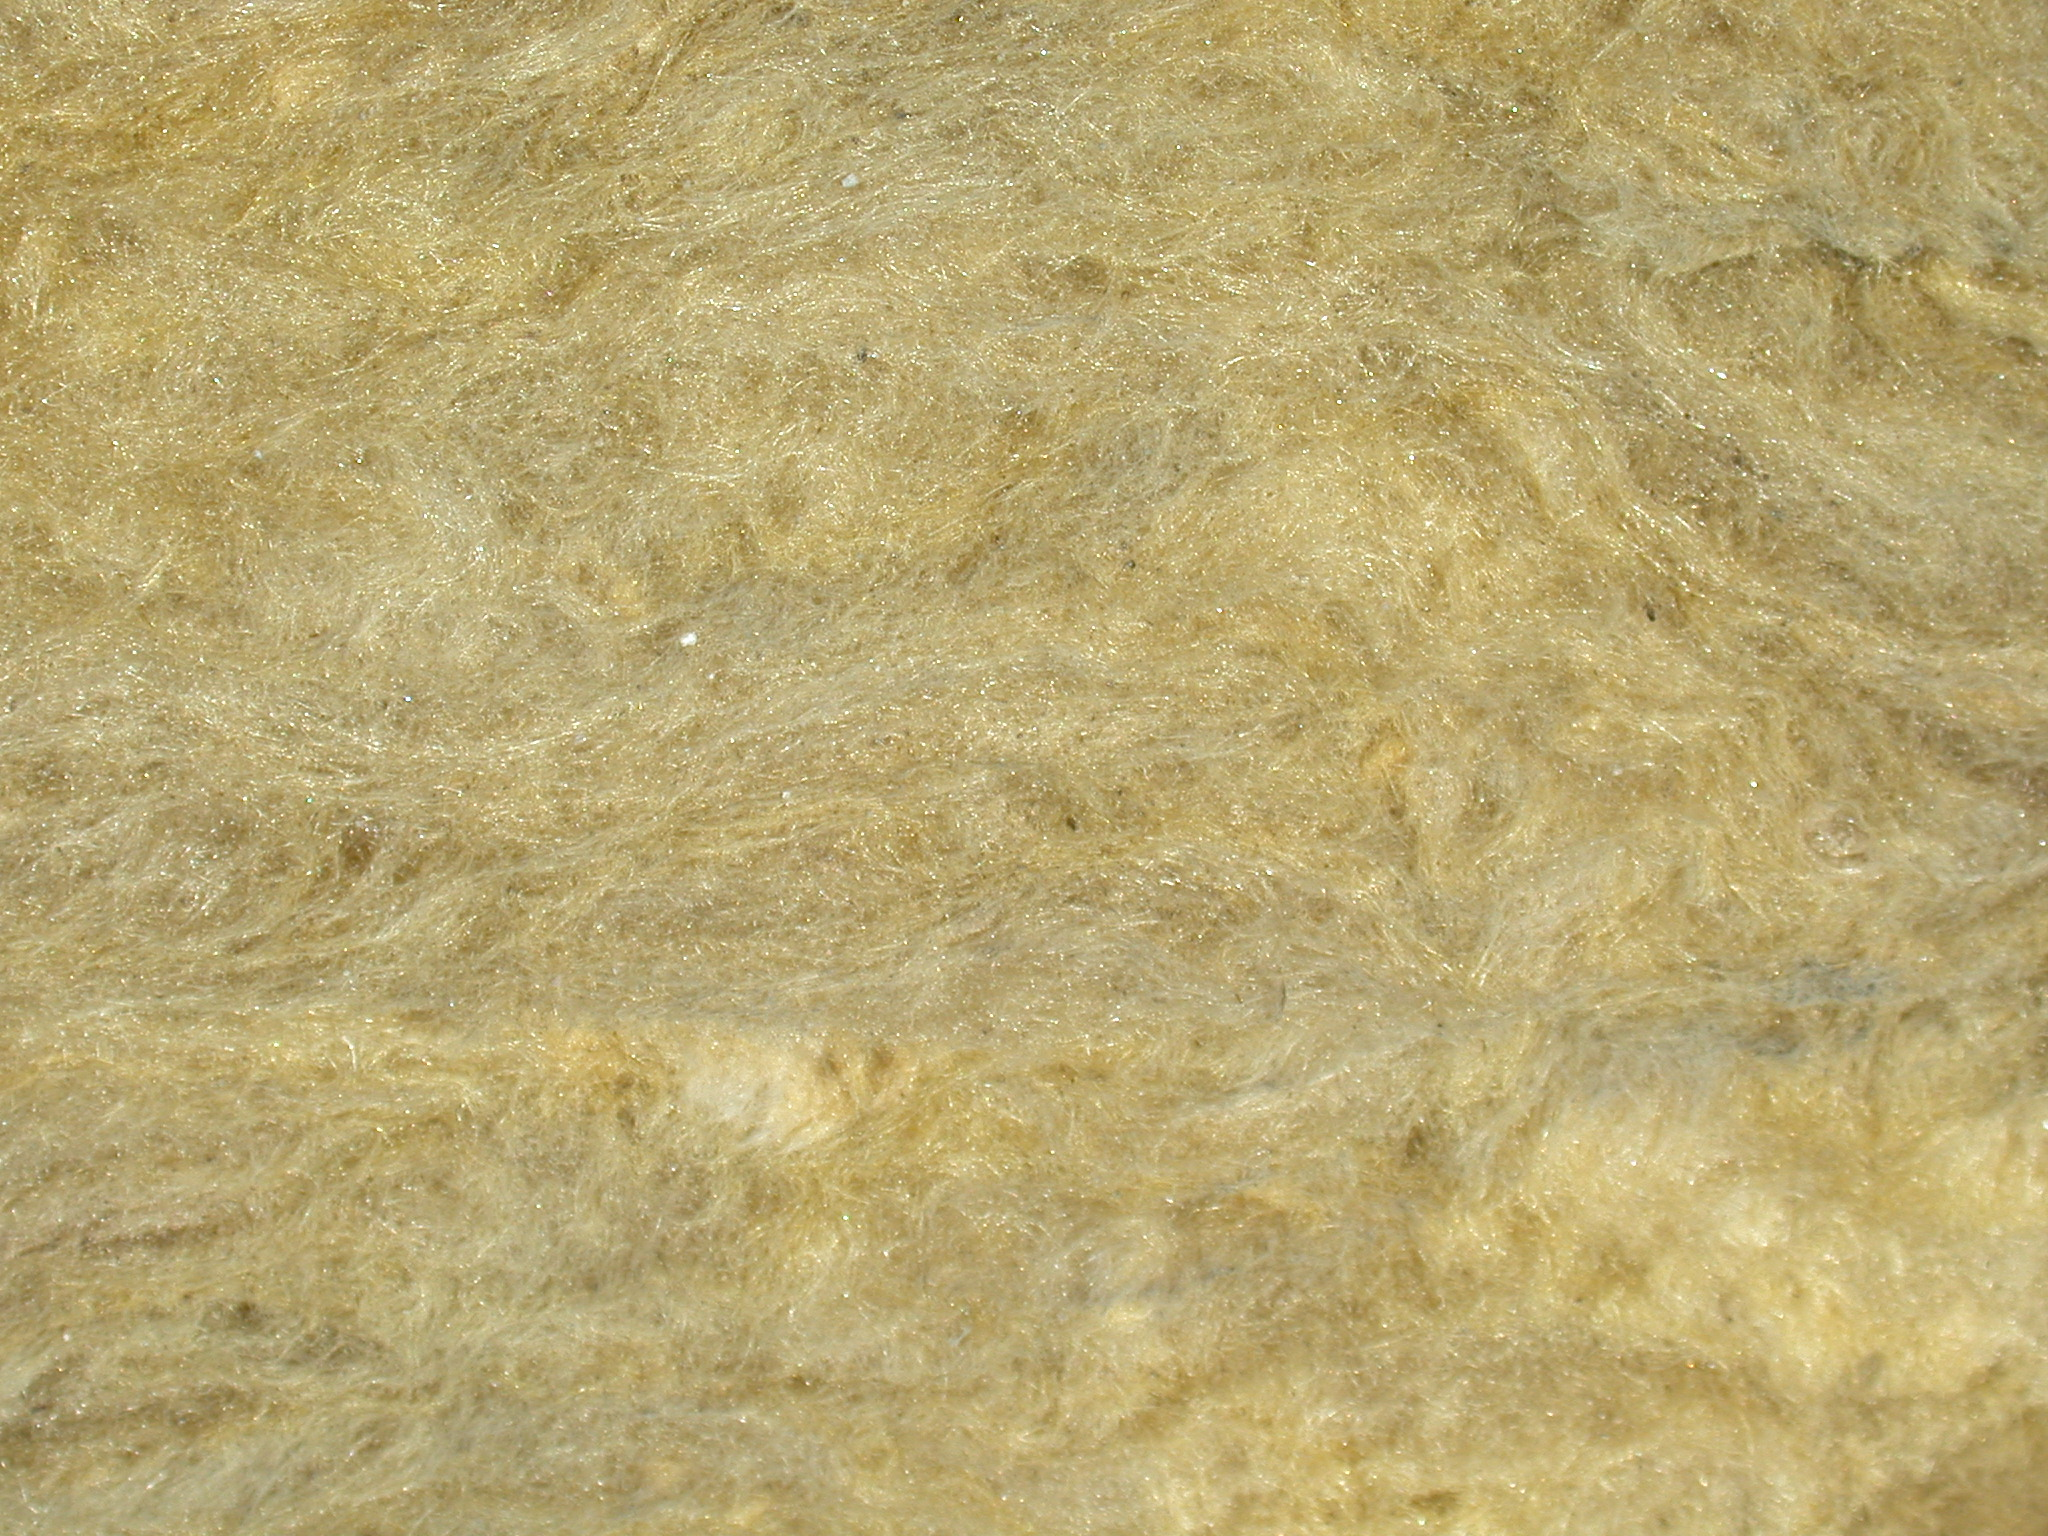 Image*After : textures : fur rockwool isolation yellow